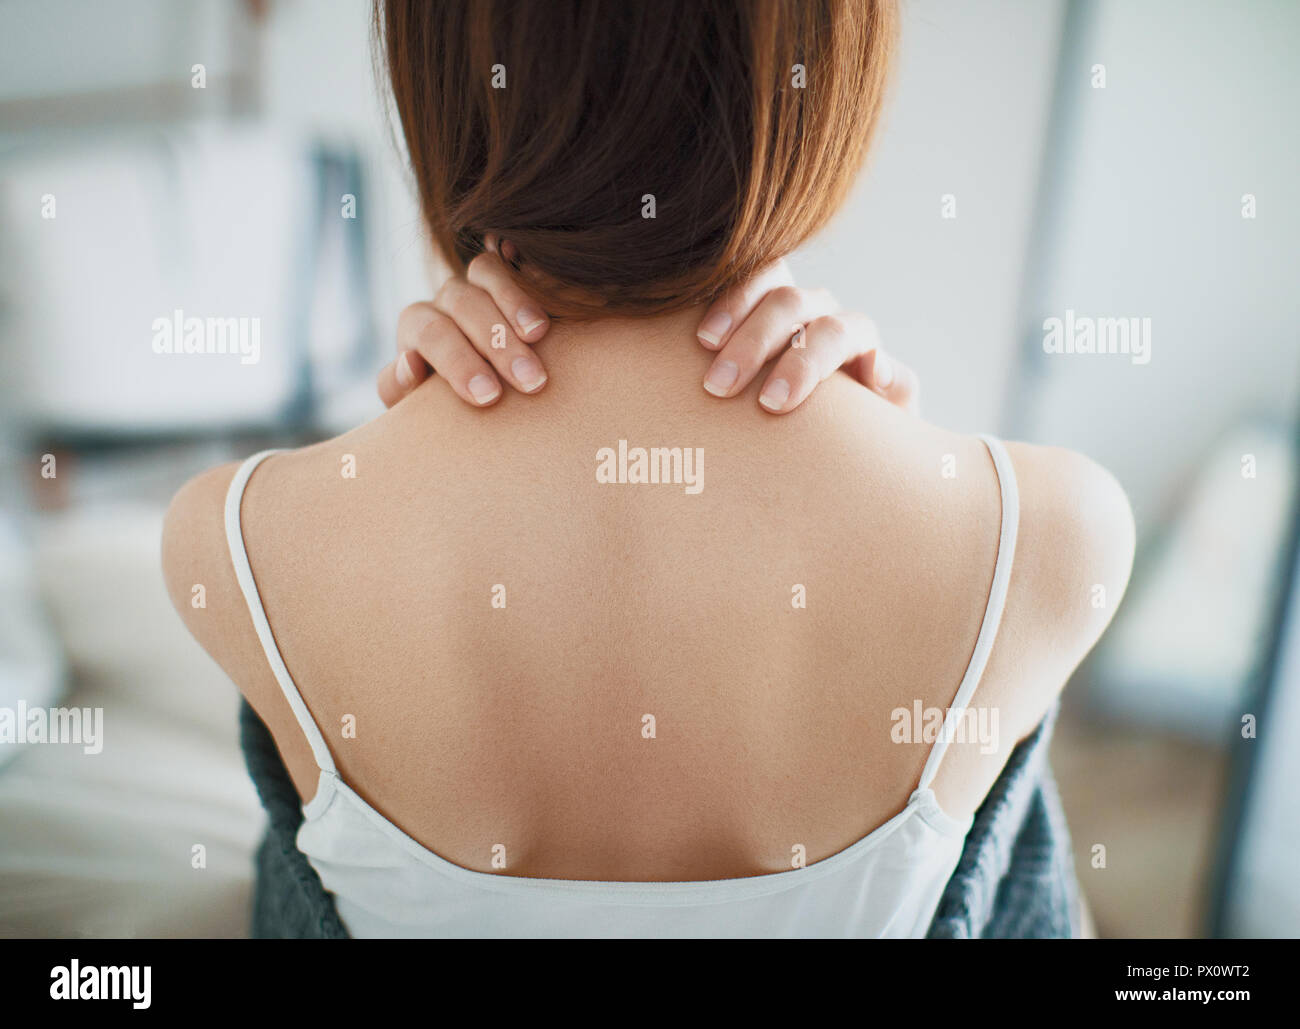 Woman with neck pain, stiff neck - Stock Image